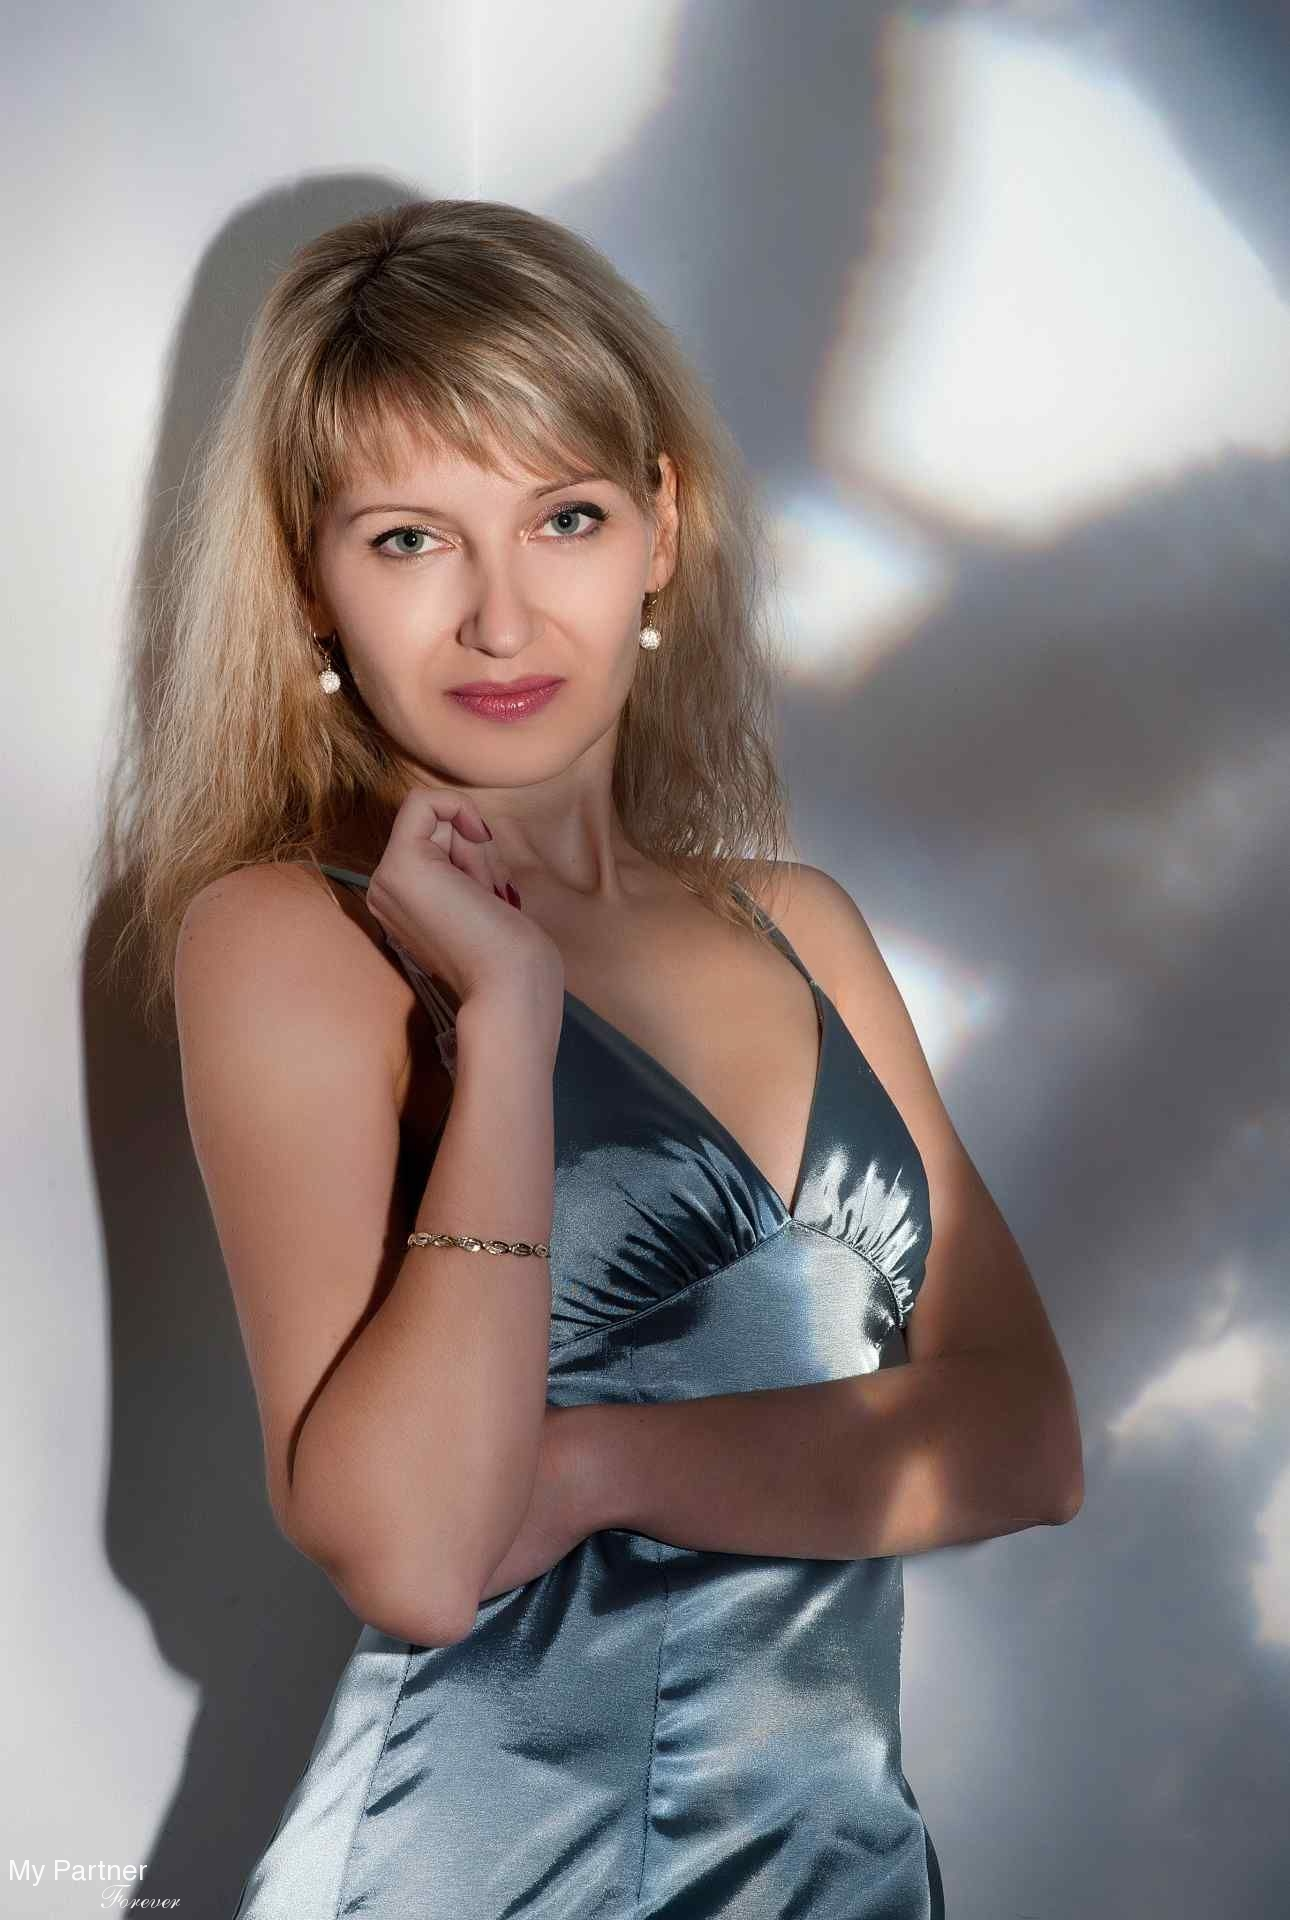 Pretty Girl from Ukraine - Olga from Zaporozhye, Ukraine